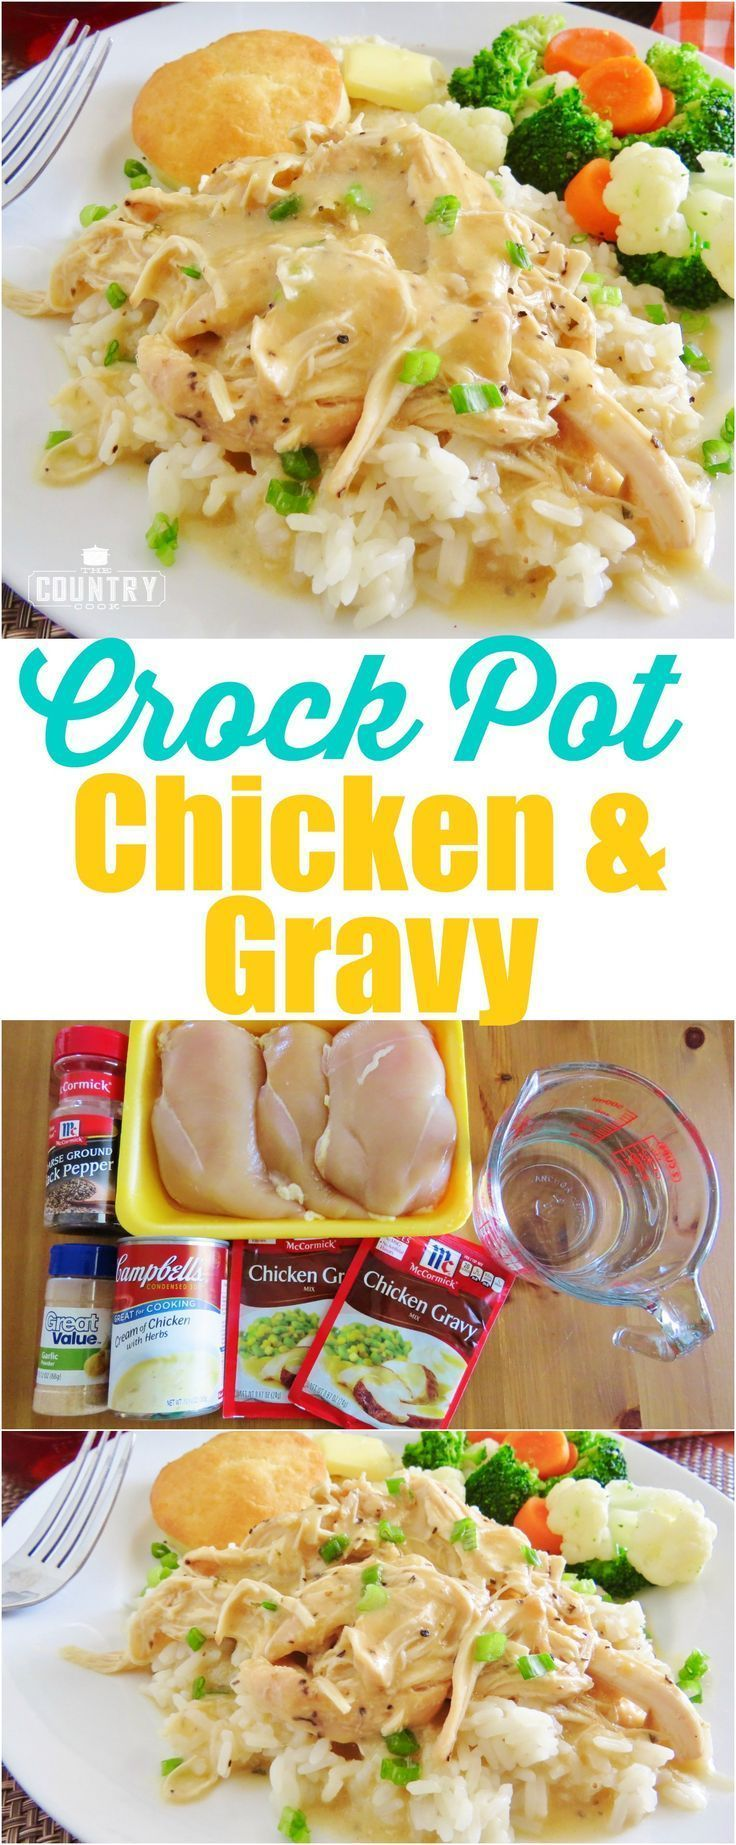 Crock Pot Chicken and Gravy recipe from The Country Cook (Creative Baking Crock Pot)